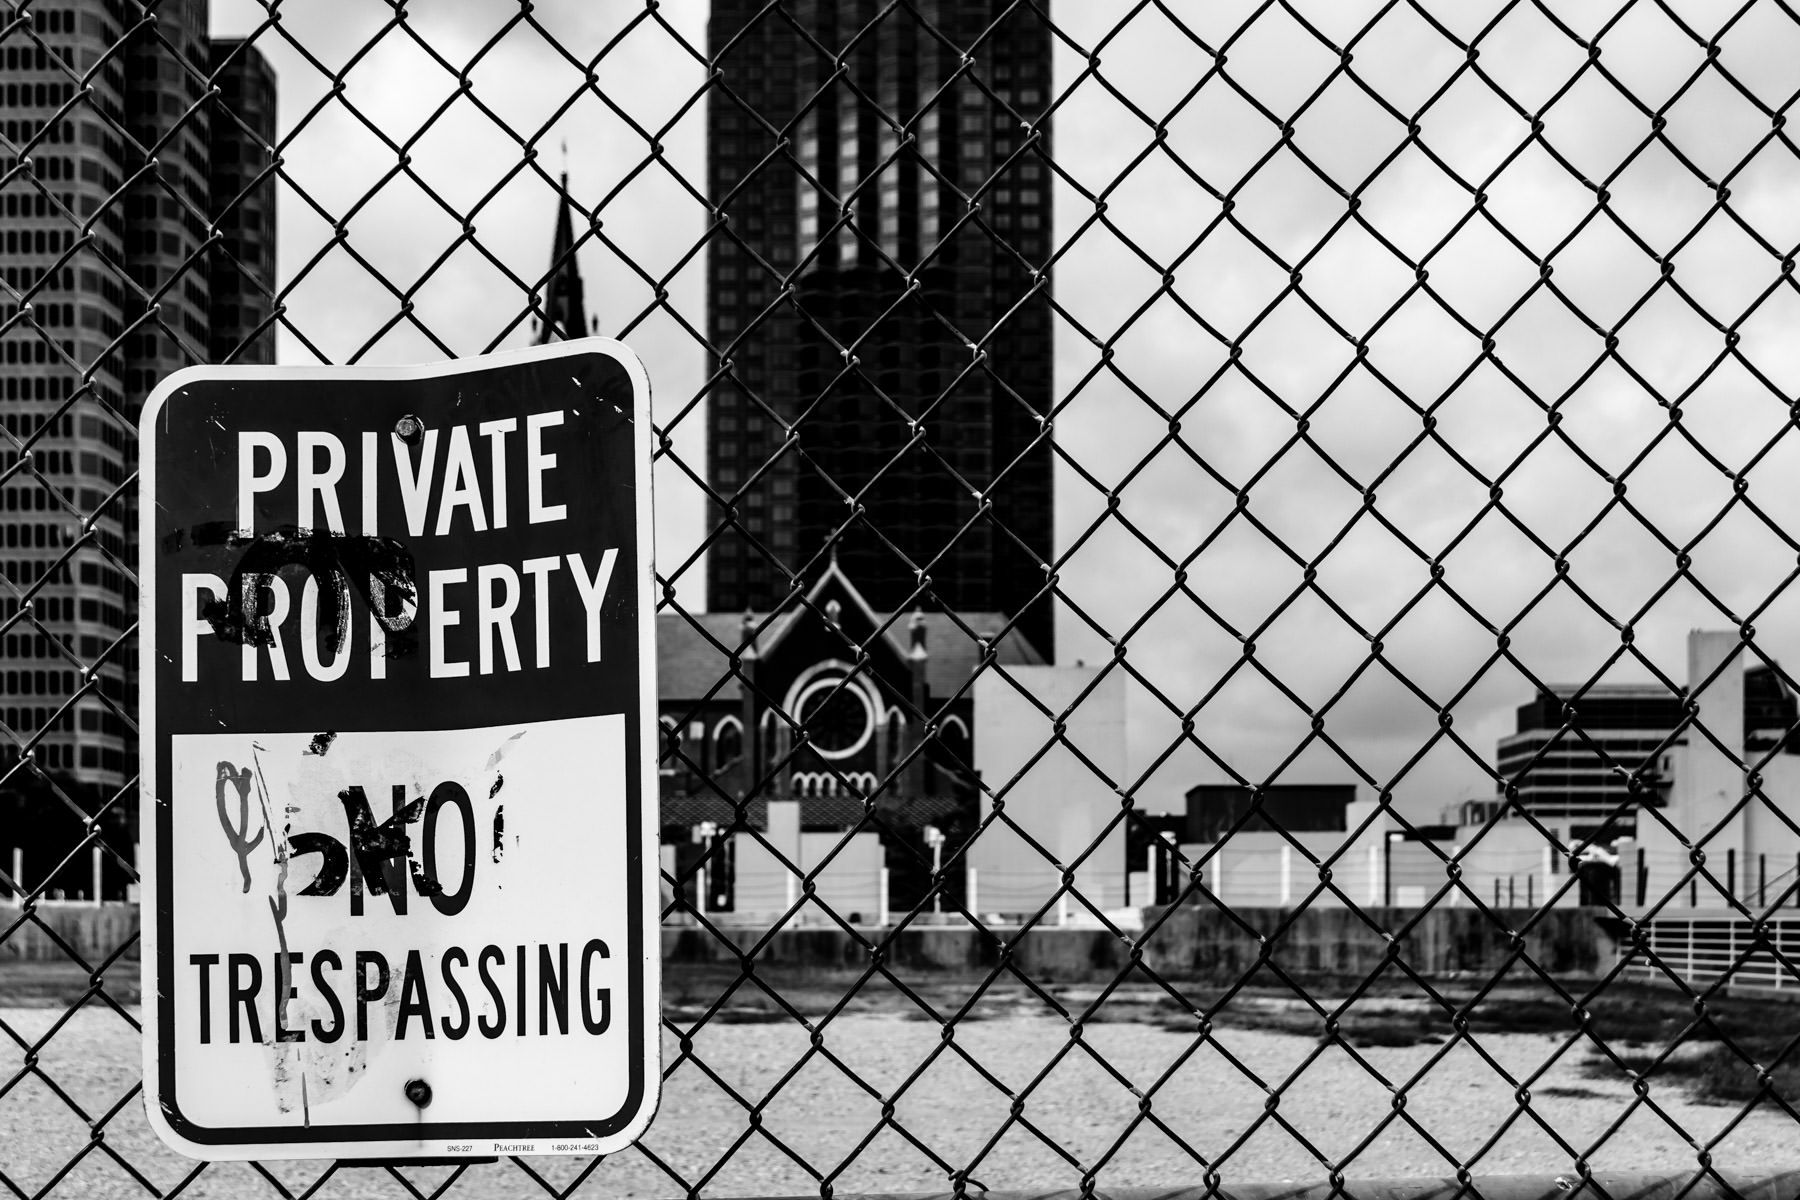 A private property sign on a fence spotted in the Dallas Arts District.